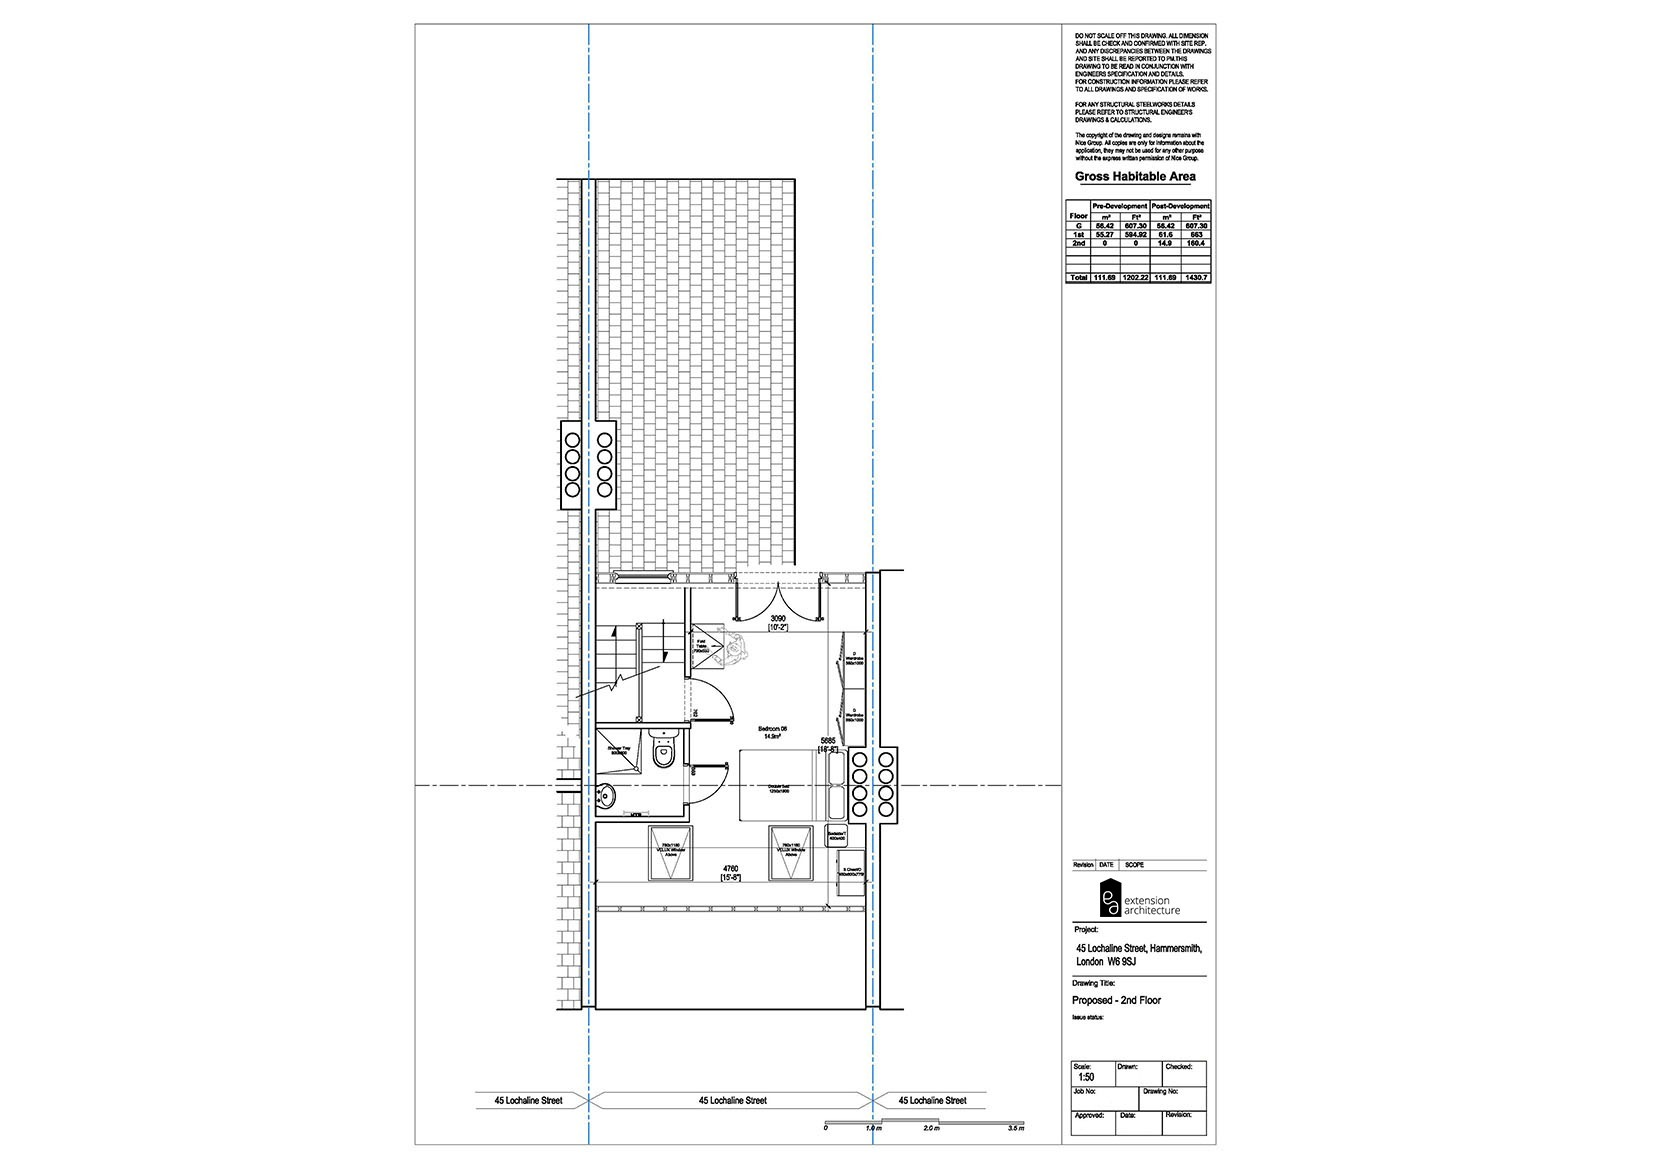 RESIDENTIAL 45LS proposed_convert to flats...page 03